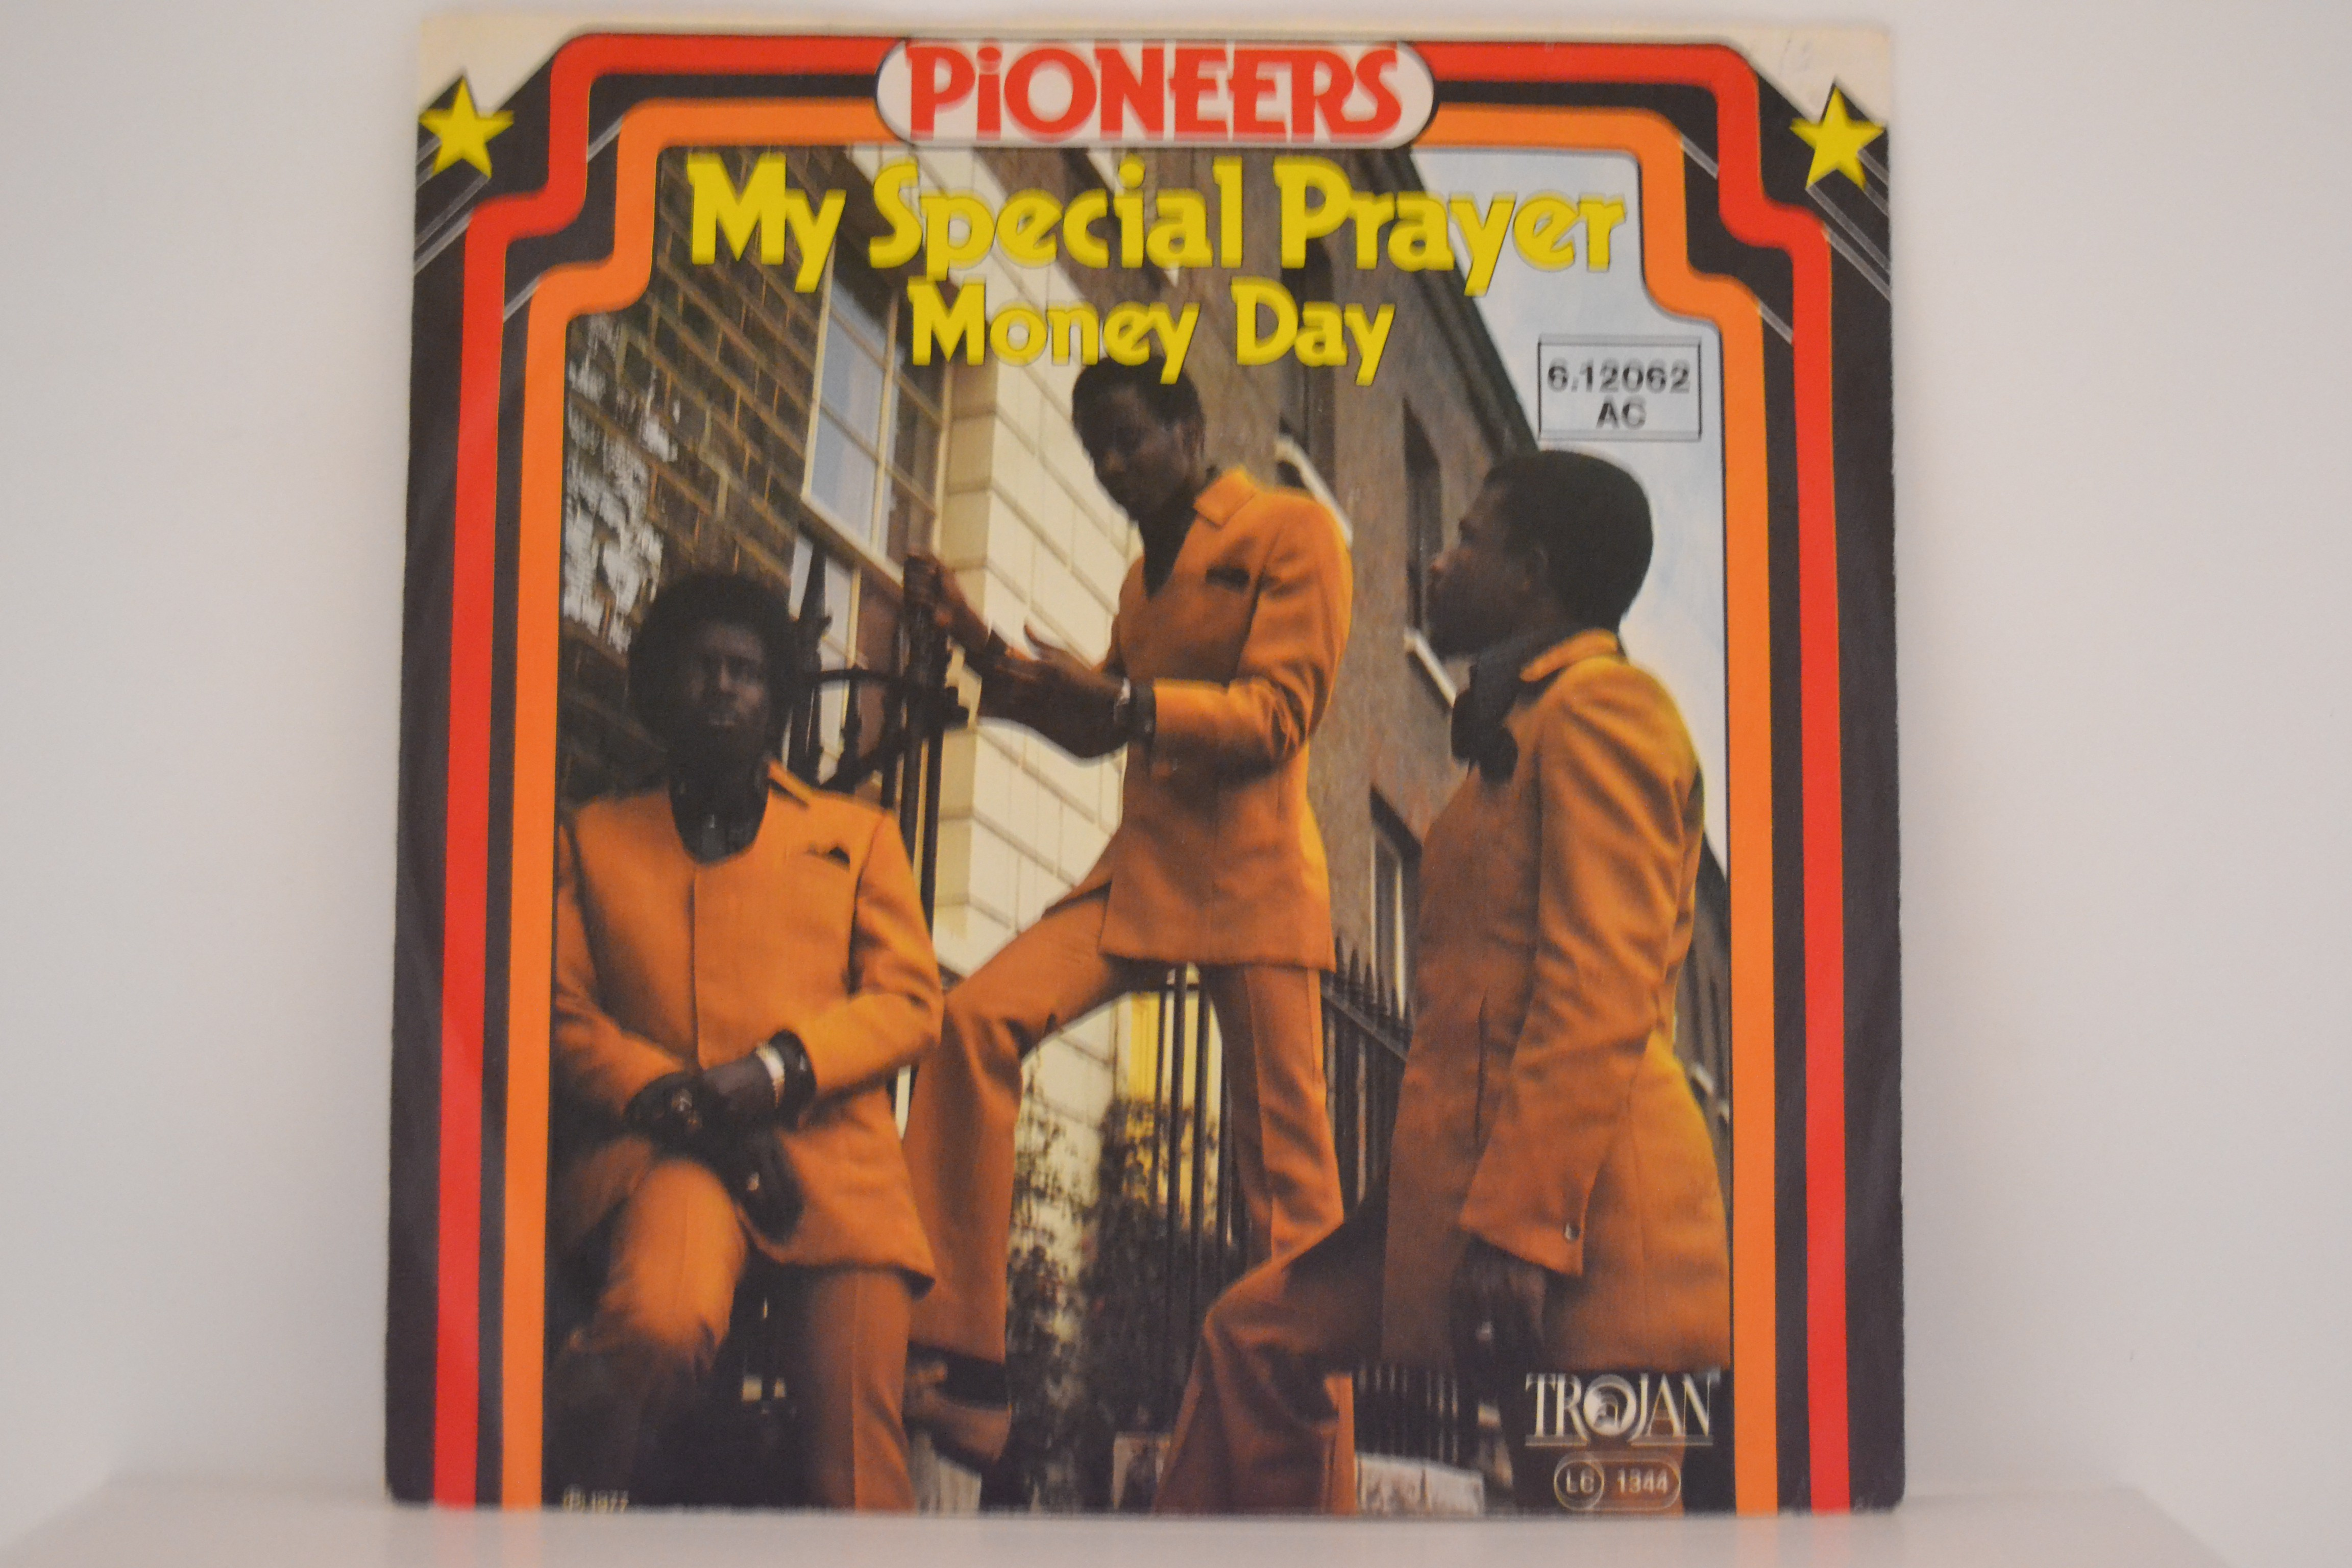 PIONEERS : My special prayer / Money day